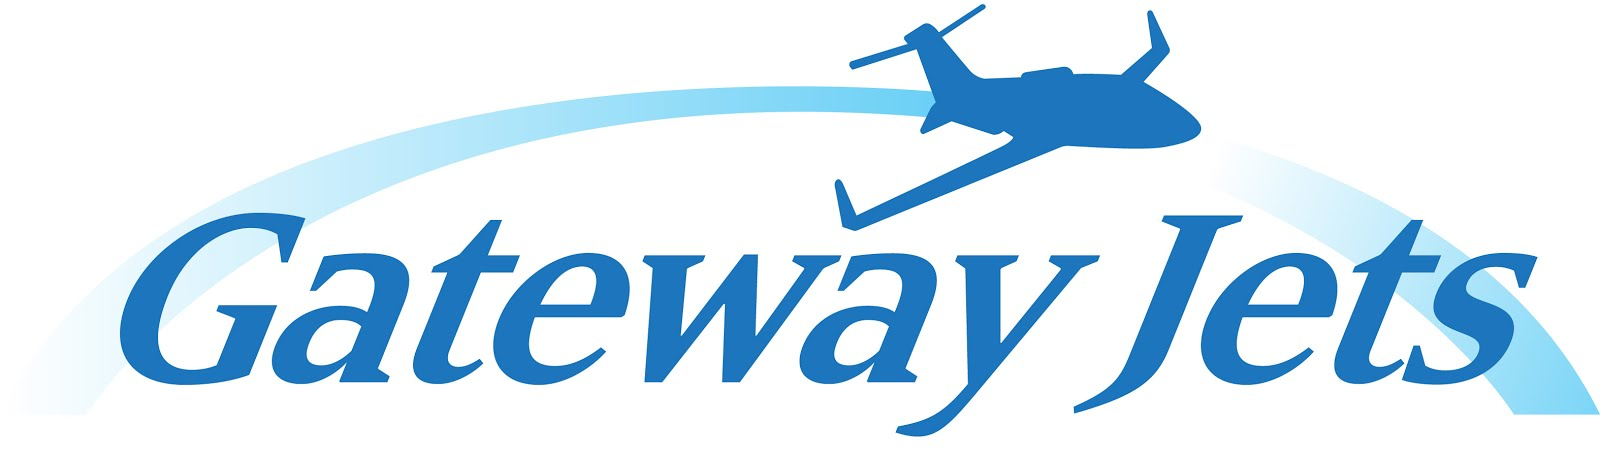 Gateway Jets Is Your Aircraft Management Choice in St. Louis